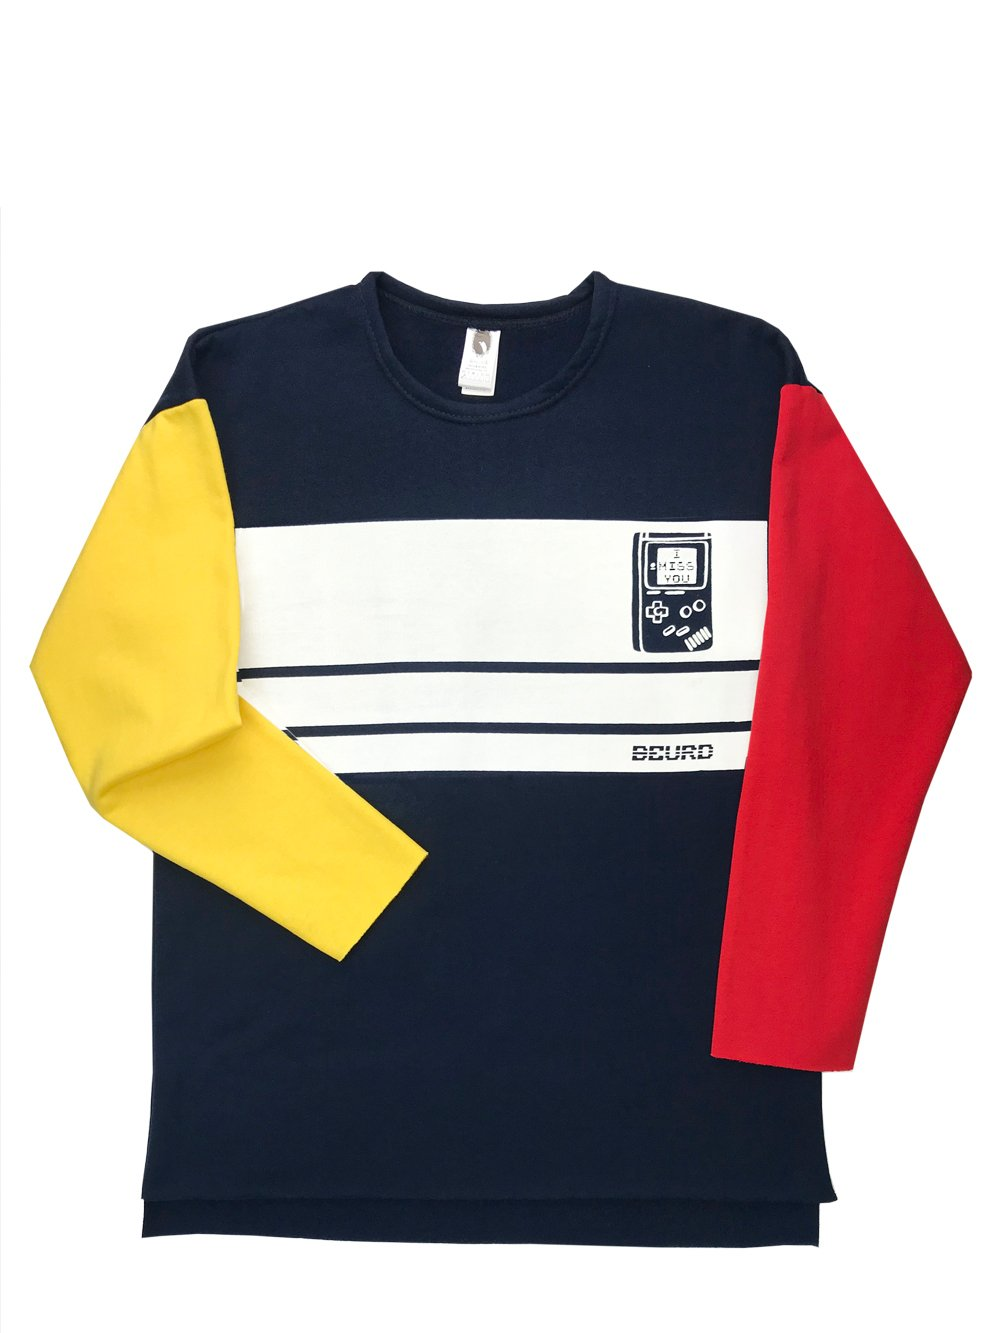 Oversized sweater crewneck drop shoulder colorblock